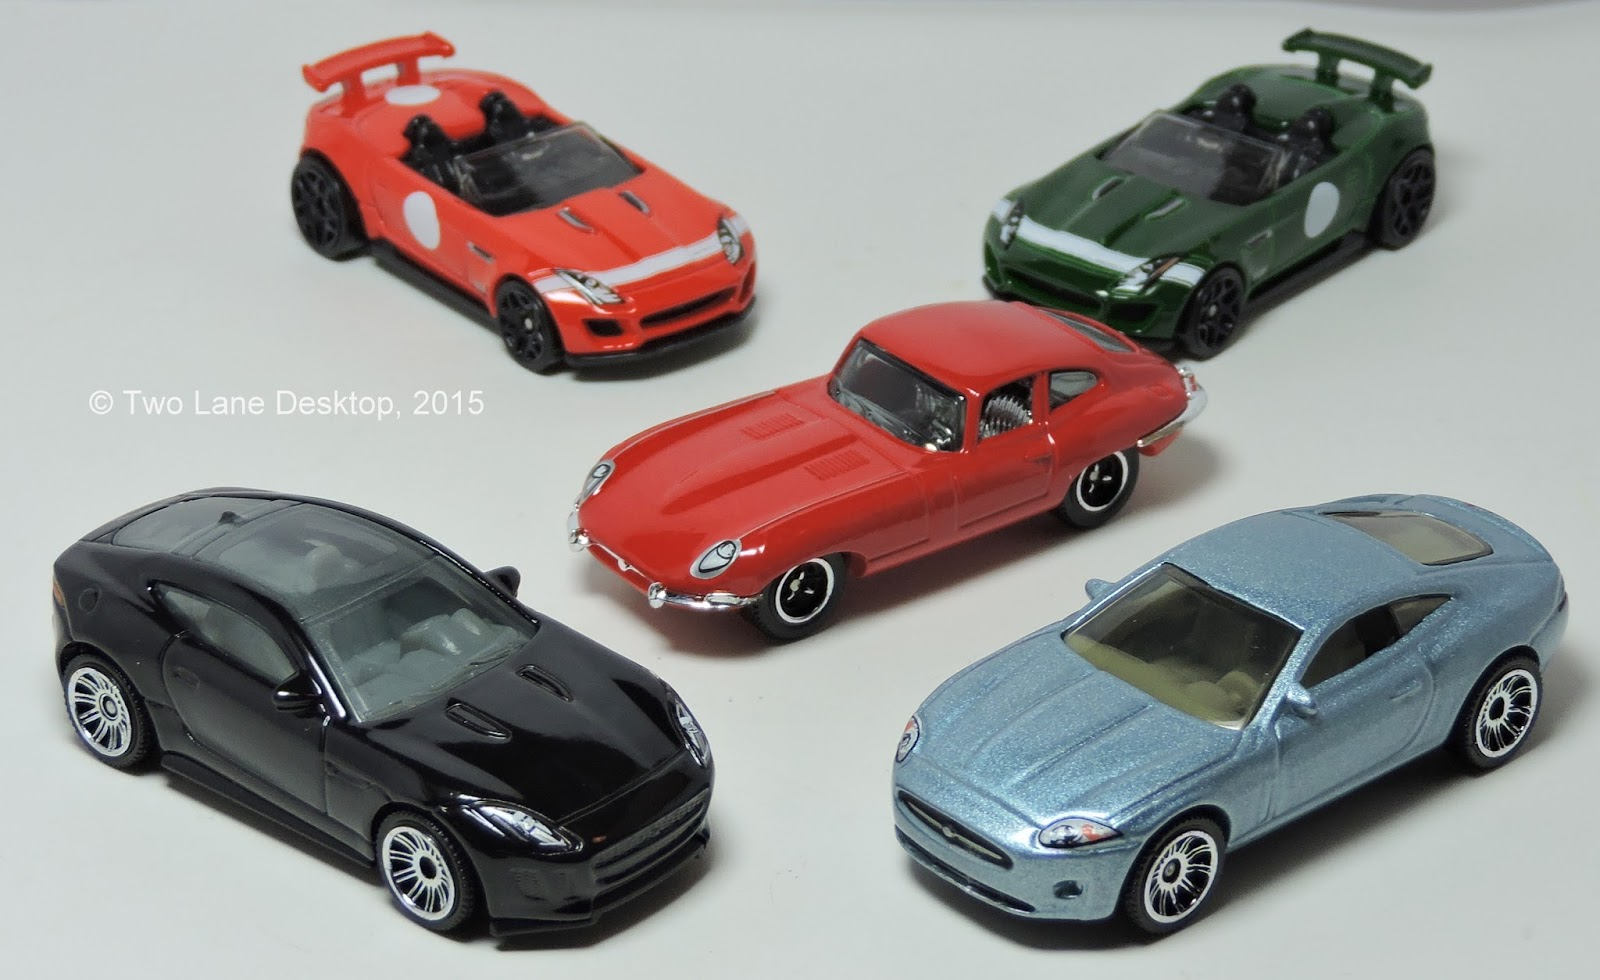 Matchbox jaguar f type coupe and hot wheels jaguar f type project 7 vs matchbox 1961 jaguar e type coupe and 2006 jaguar xk